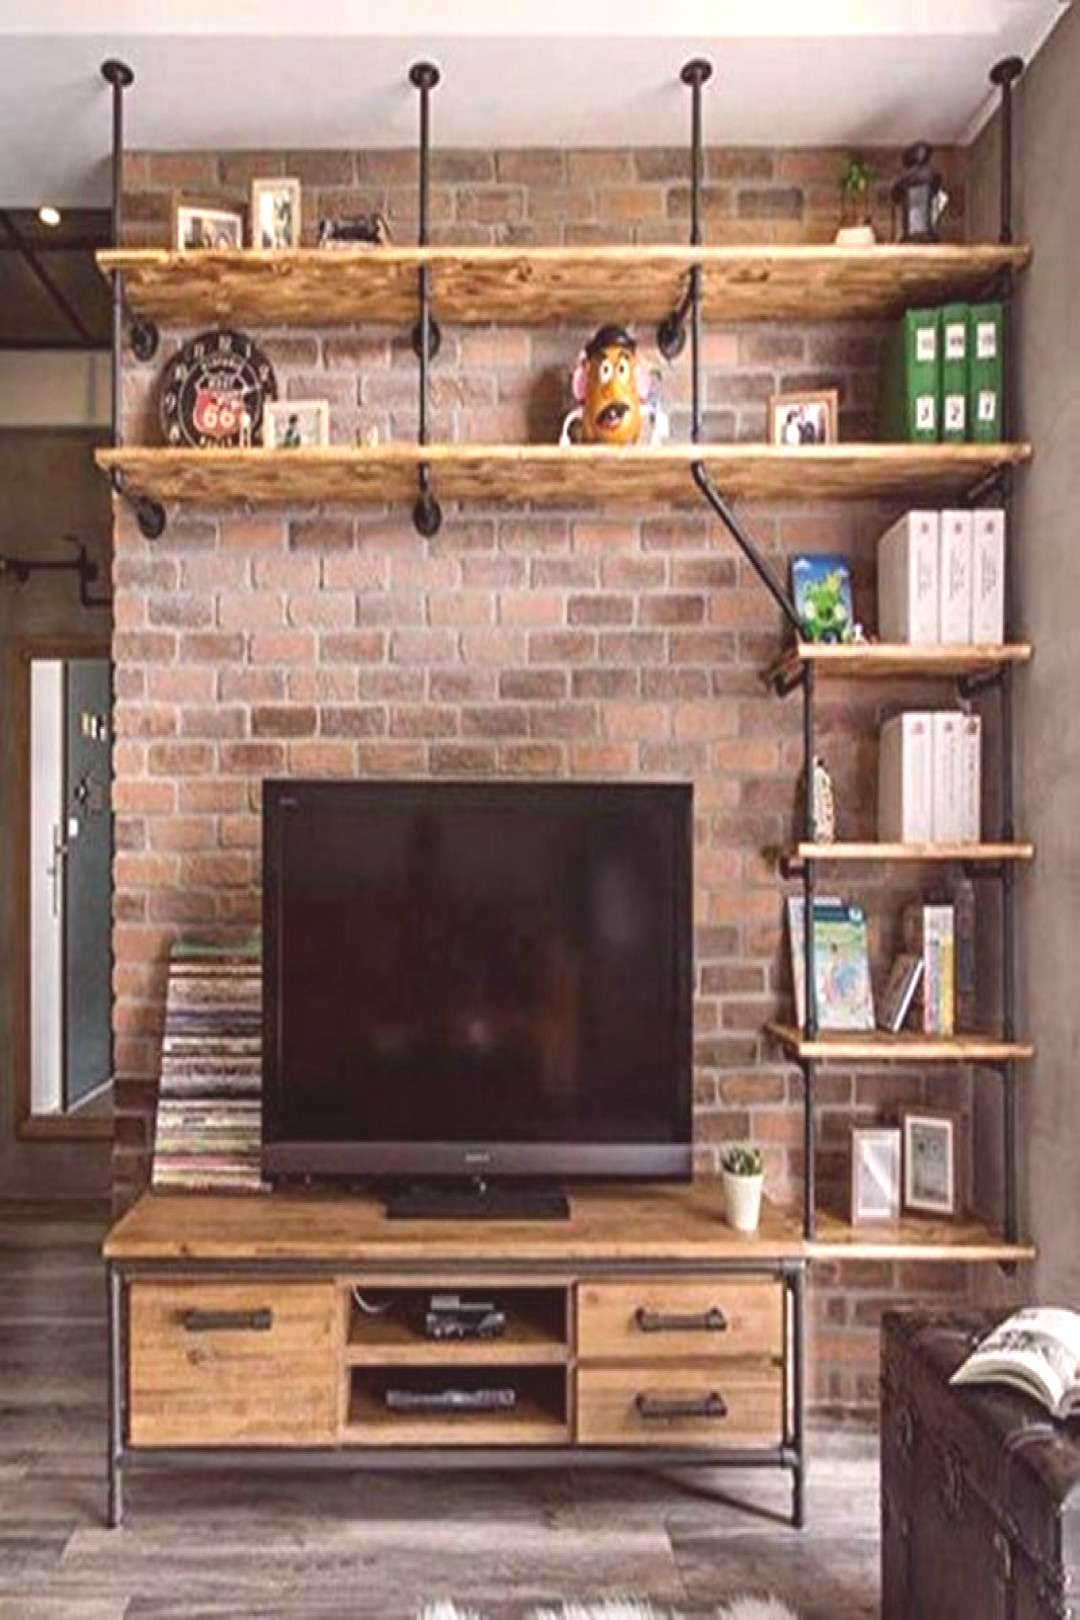 5 DIY Pipe Shelves to Make an Industrial Theme for Your Home